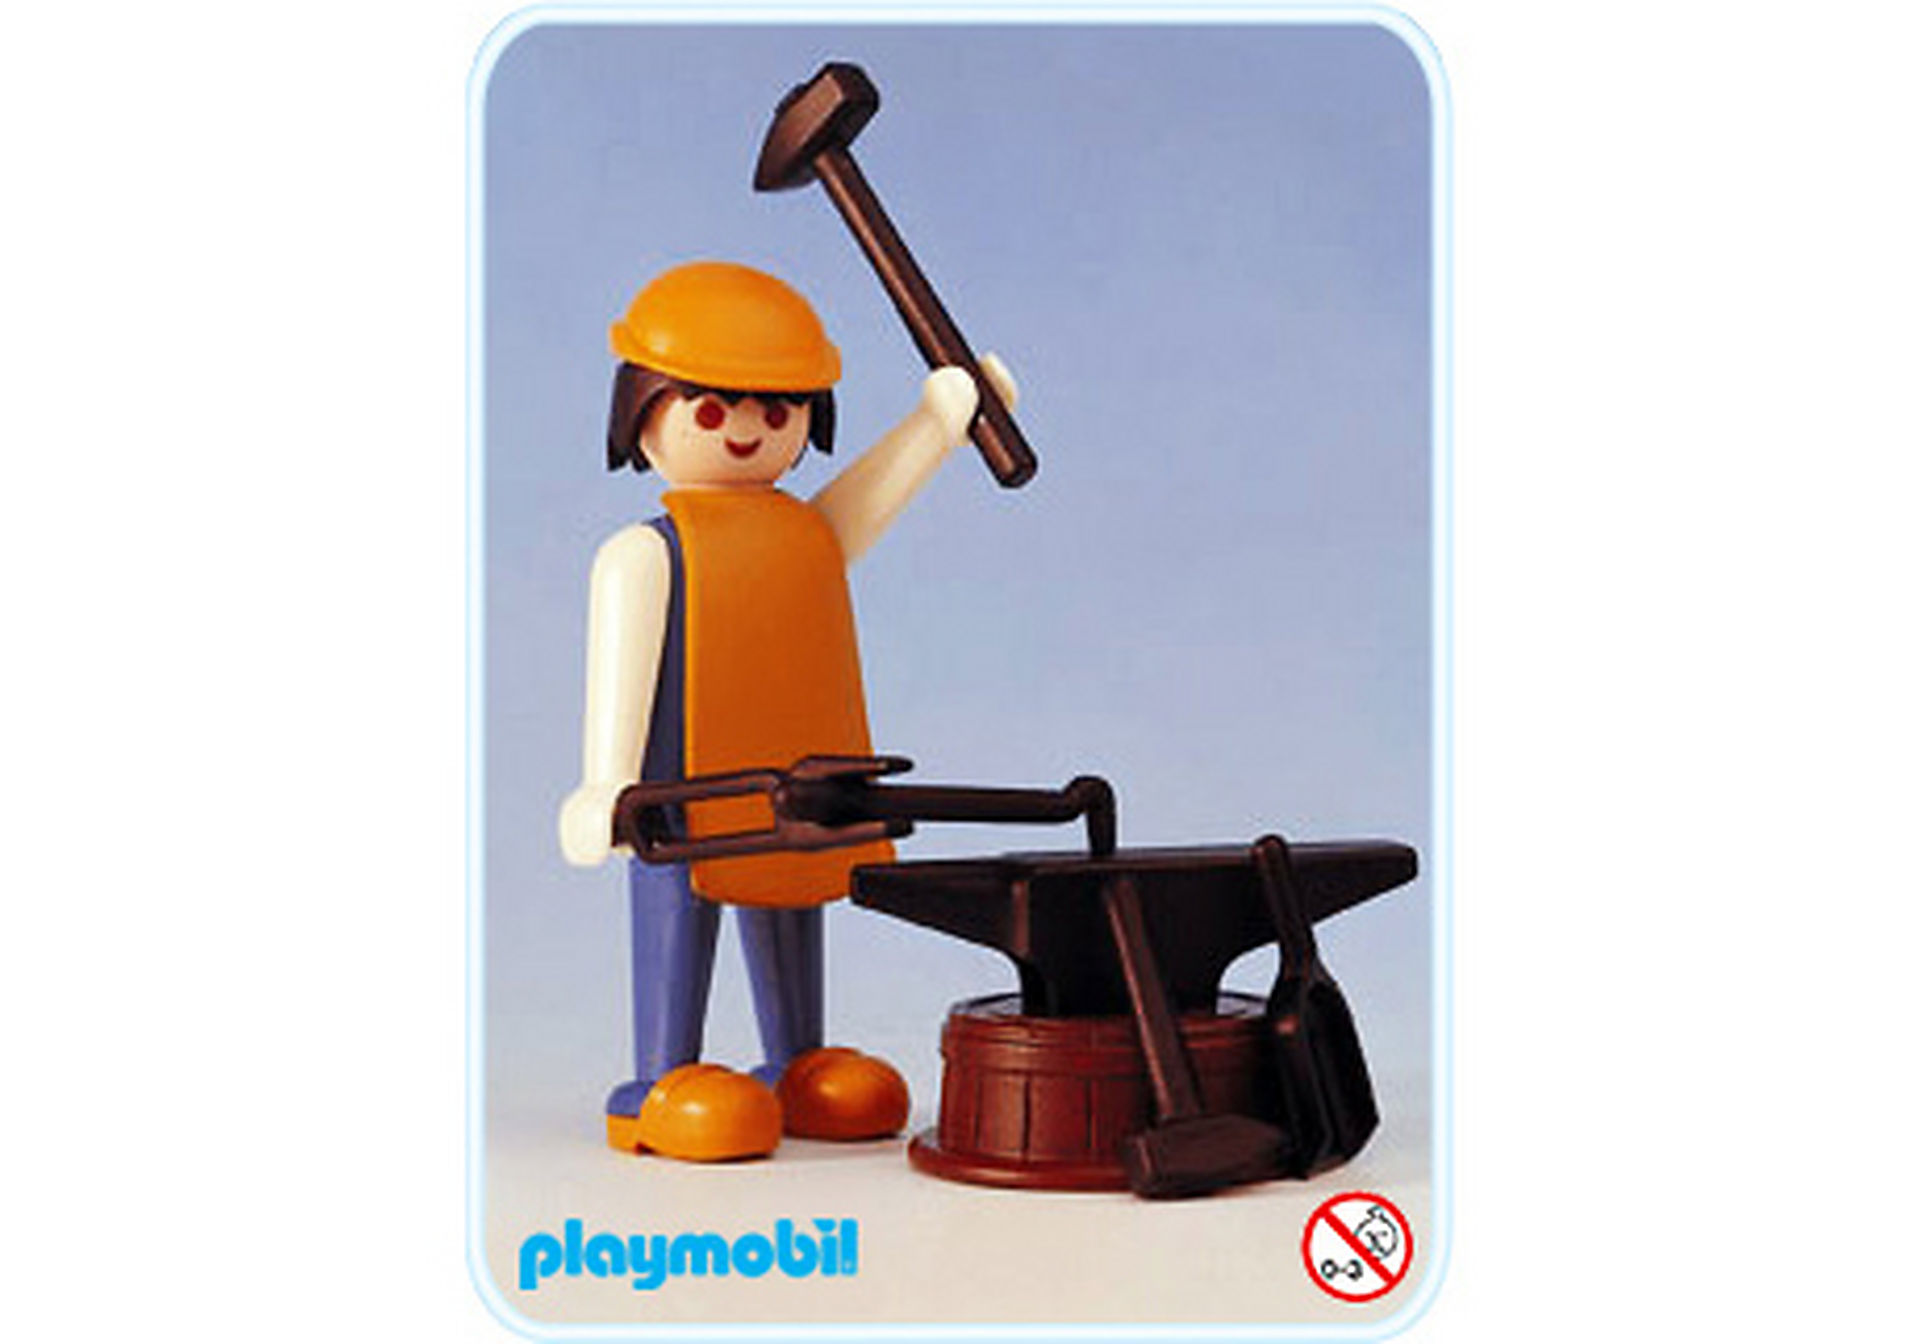 http://media.playmobil.com/i/playmobil/3370-A_product_detail/Schmied/Amboss